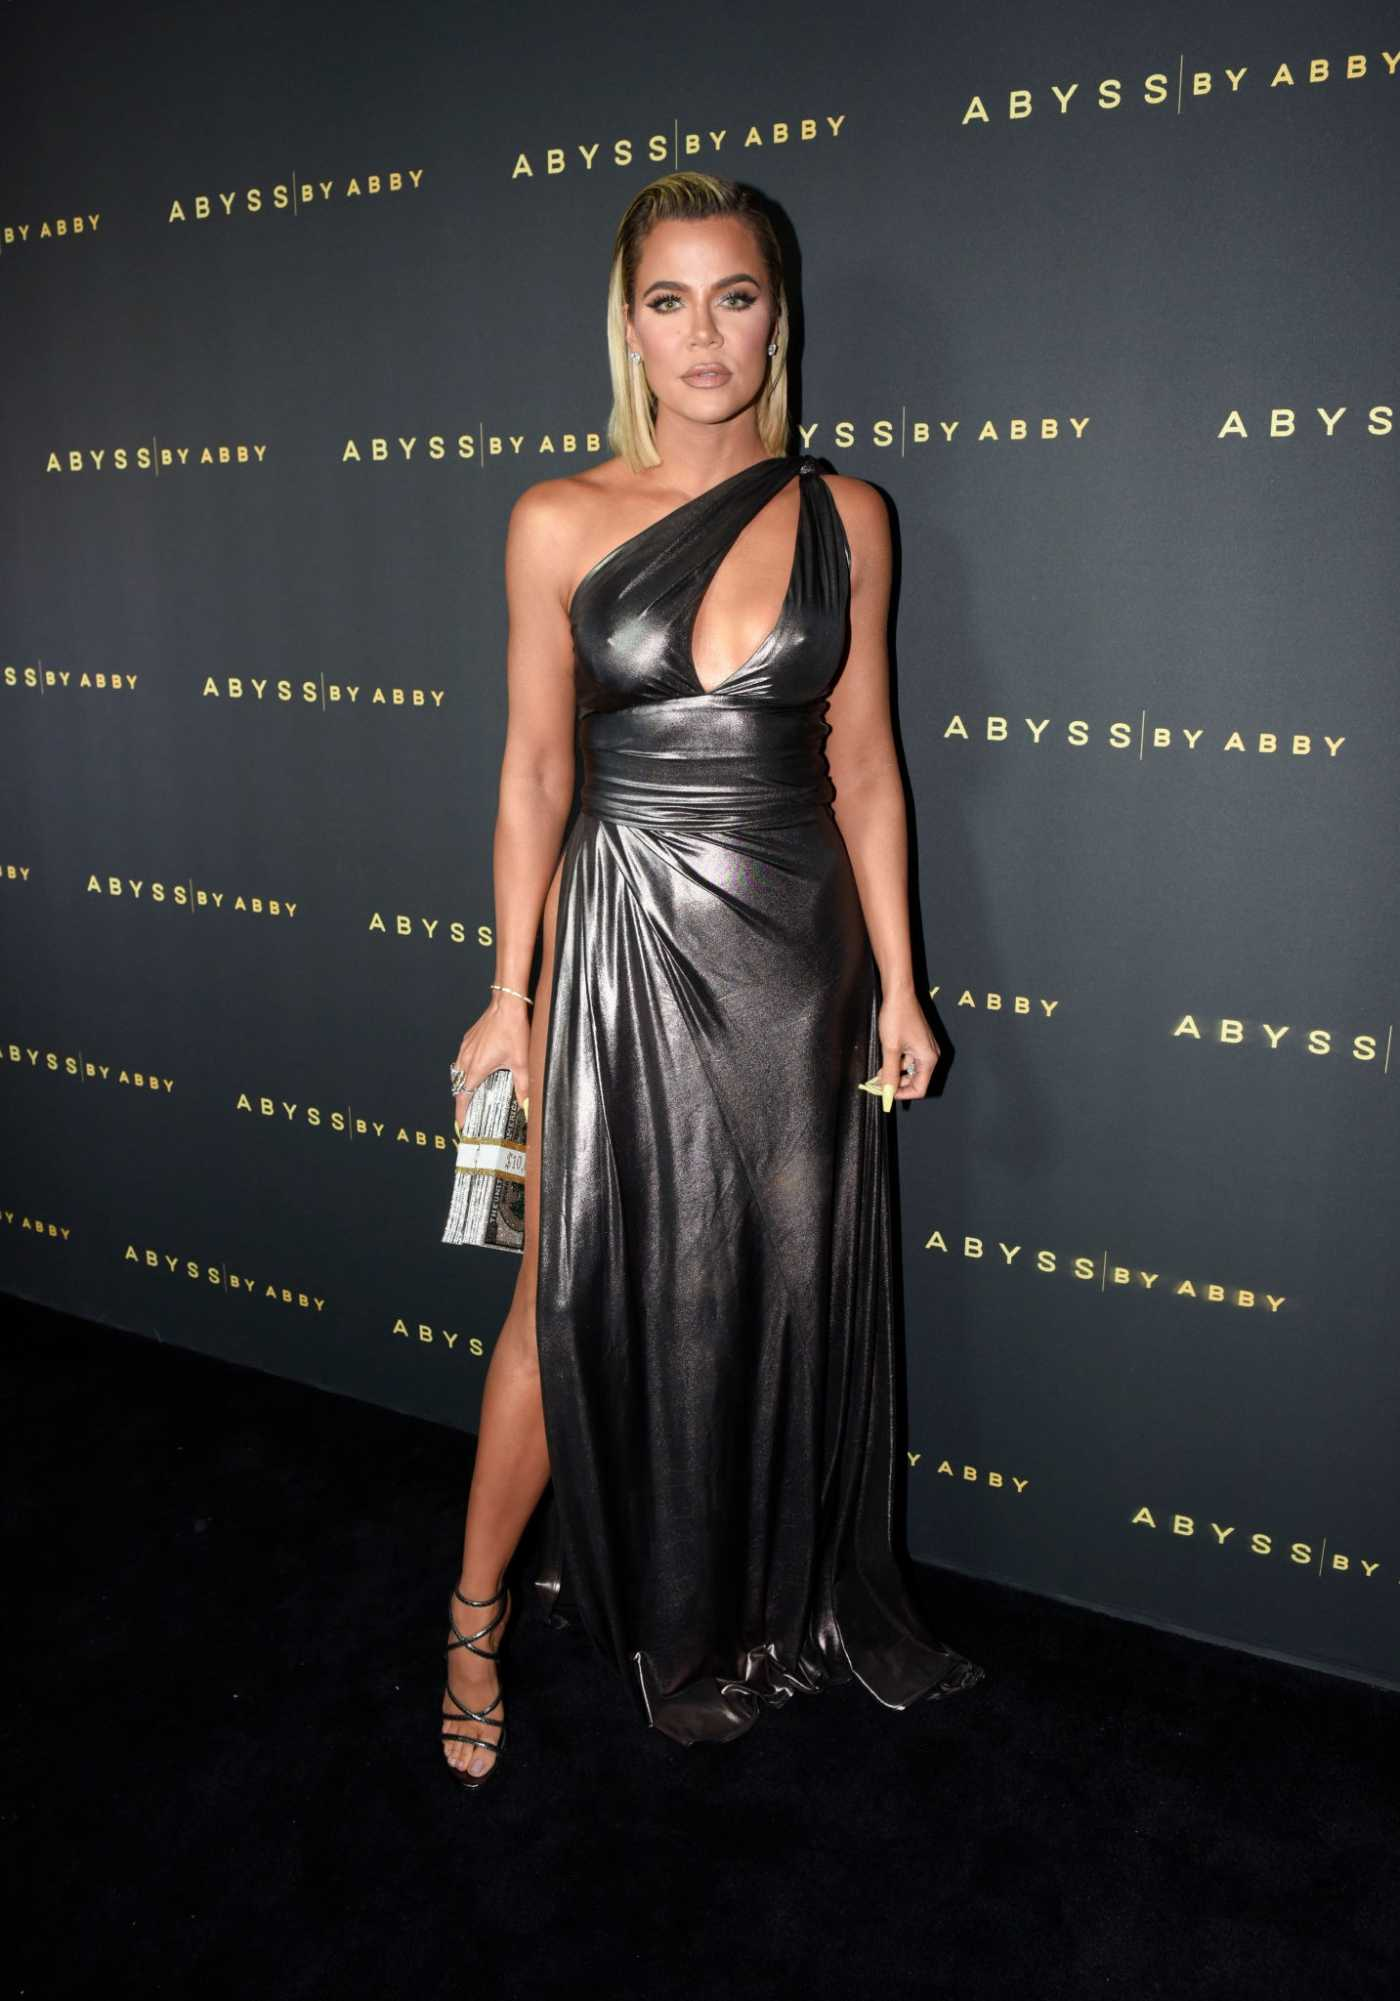 Khloe Kardashian Attends Abyss By Abby Arabian Nights Collection Launch Party in Los Angeles 01/21/2020